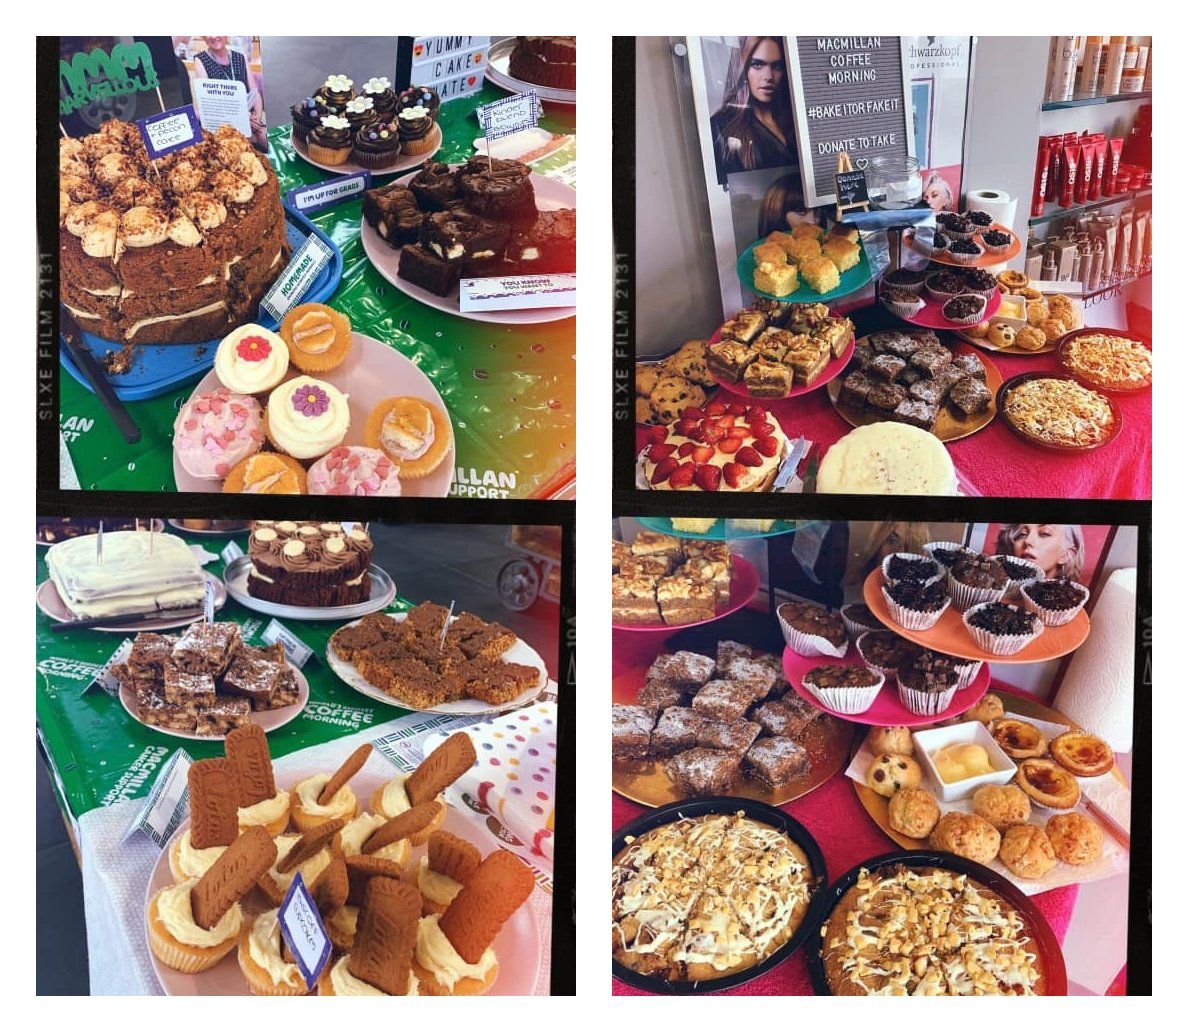 Hair Ministry Group Host Another Successful MacMillan Coffee Morning